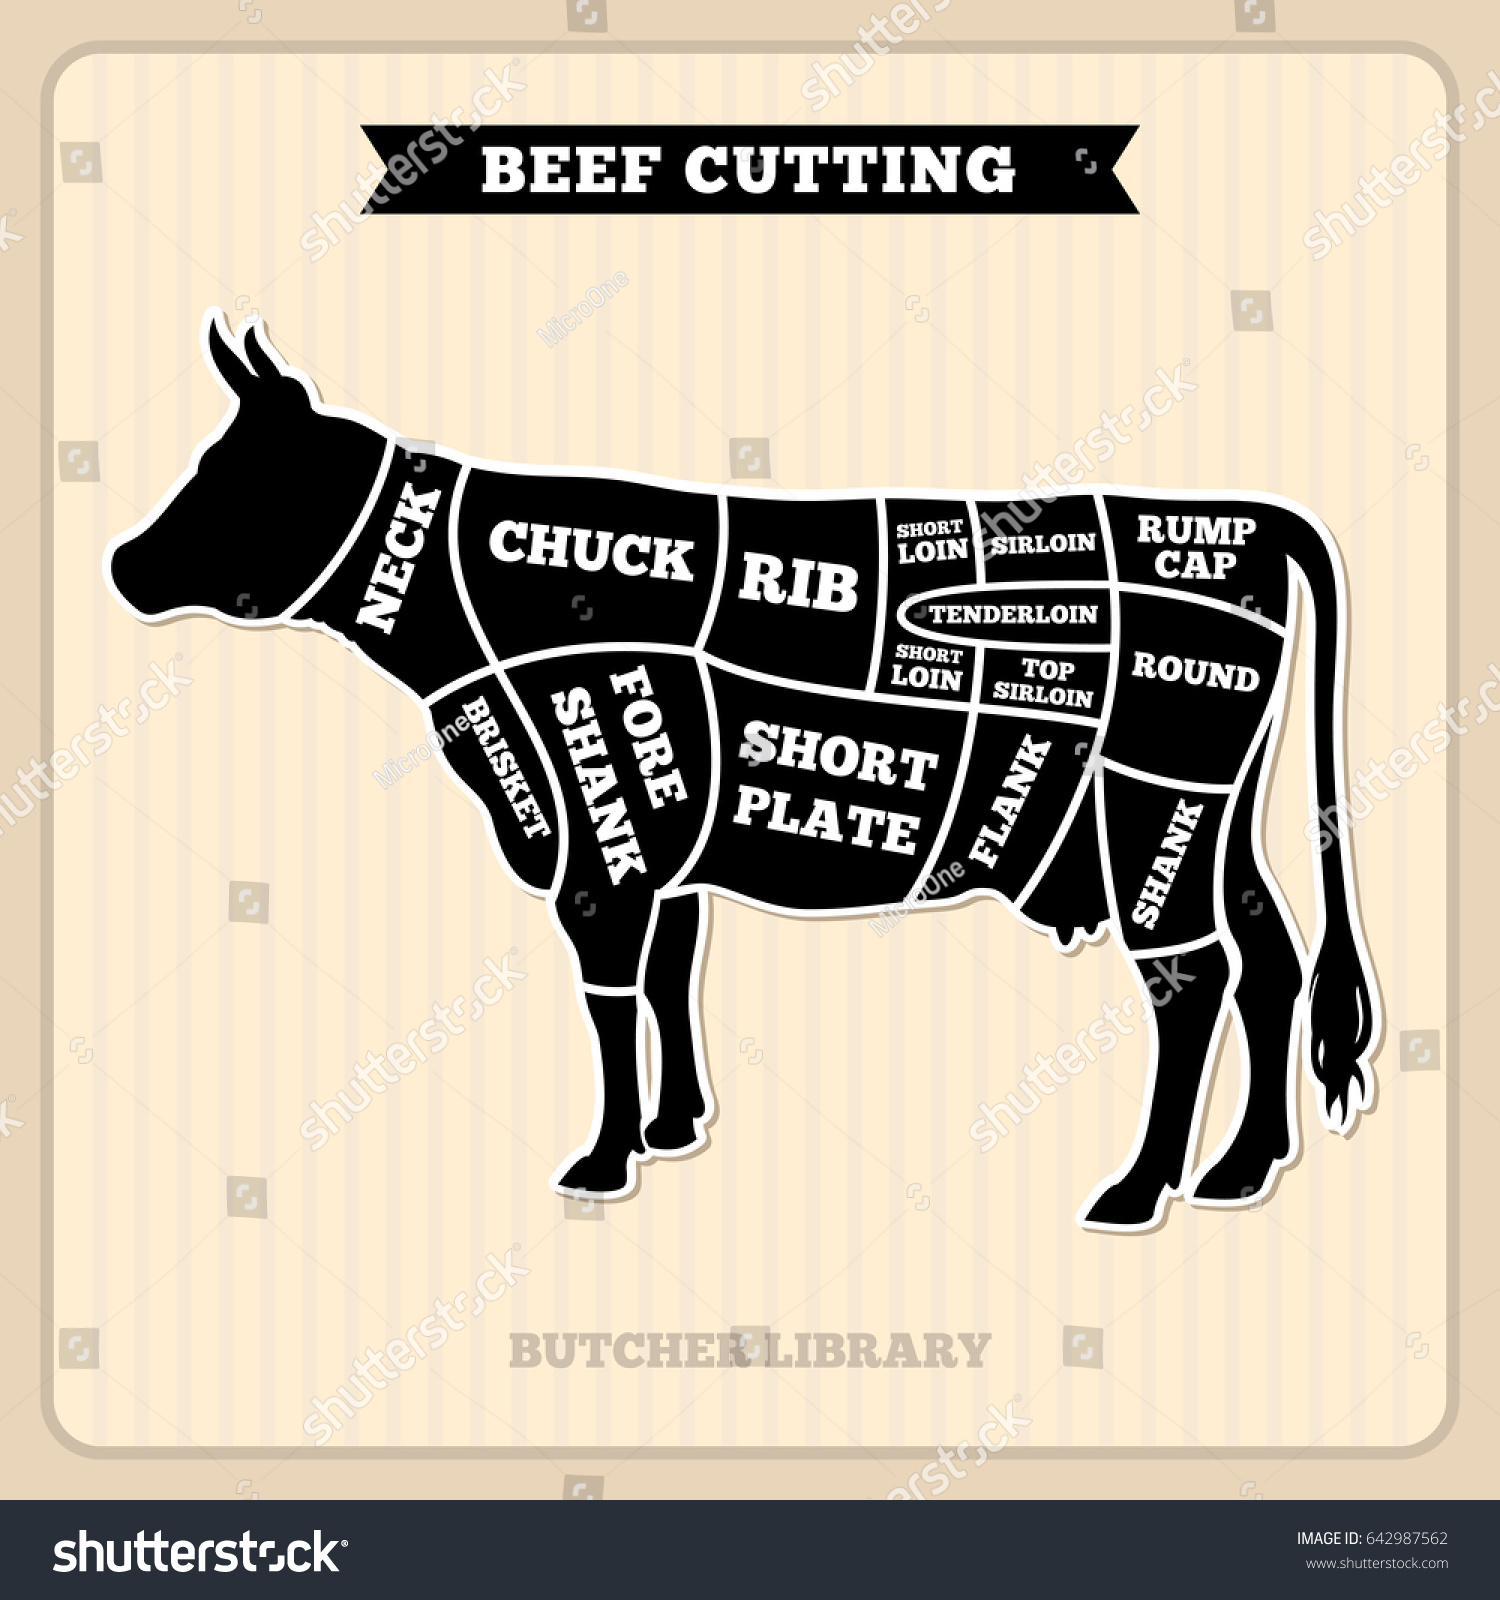 Beef Cow Cuts Butcher Diagram Placard Stock Illustration 642987562 ...